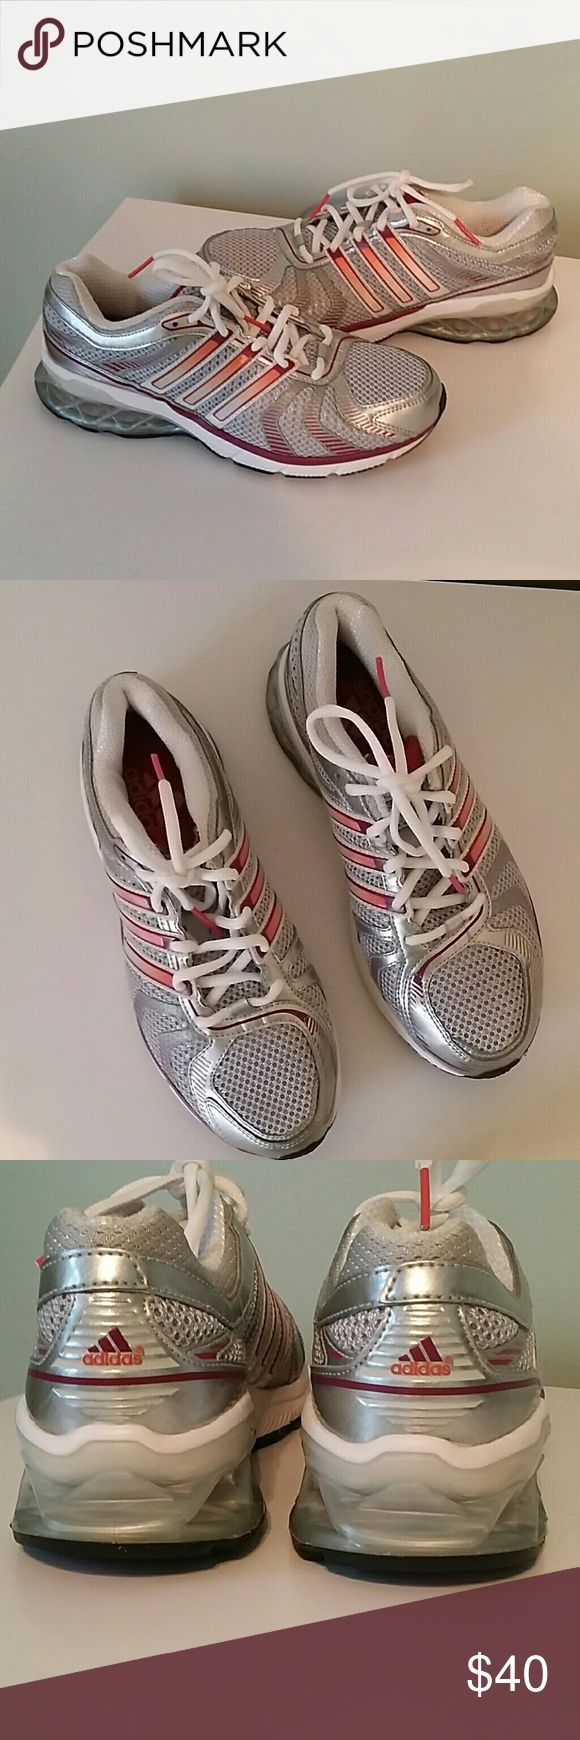 ADIDAS BOOST RUNNING SHOES   7.5 Like new condition. Adidas Shoes Athletic Shoes